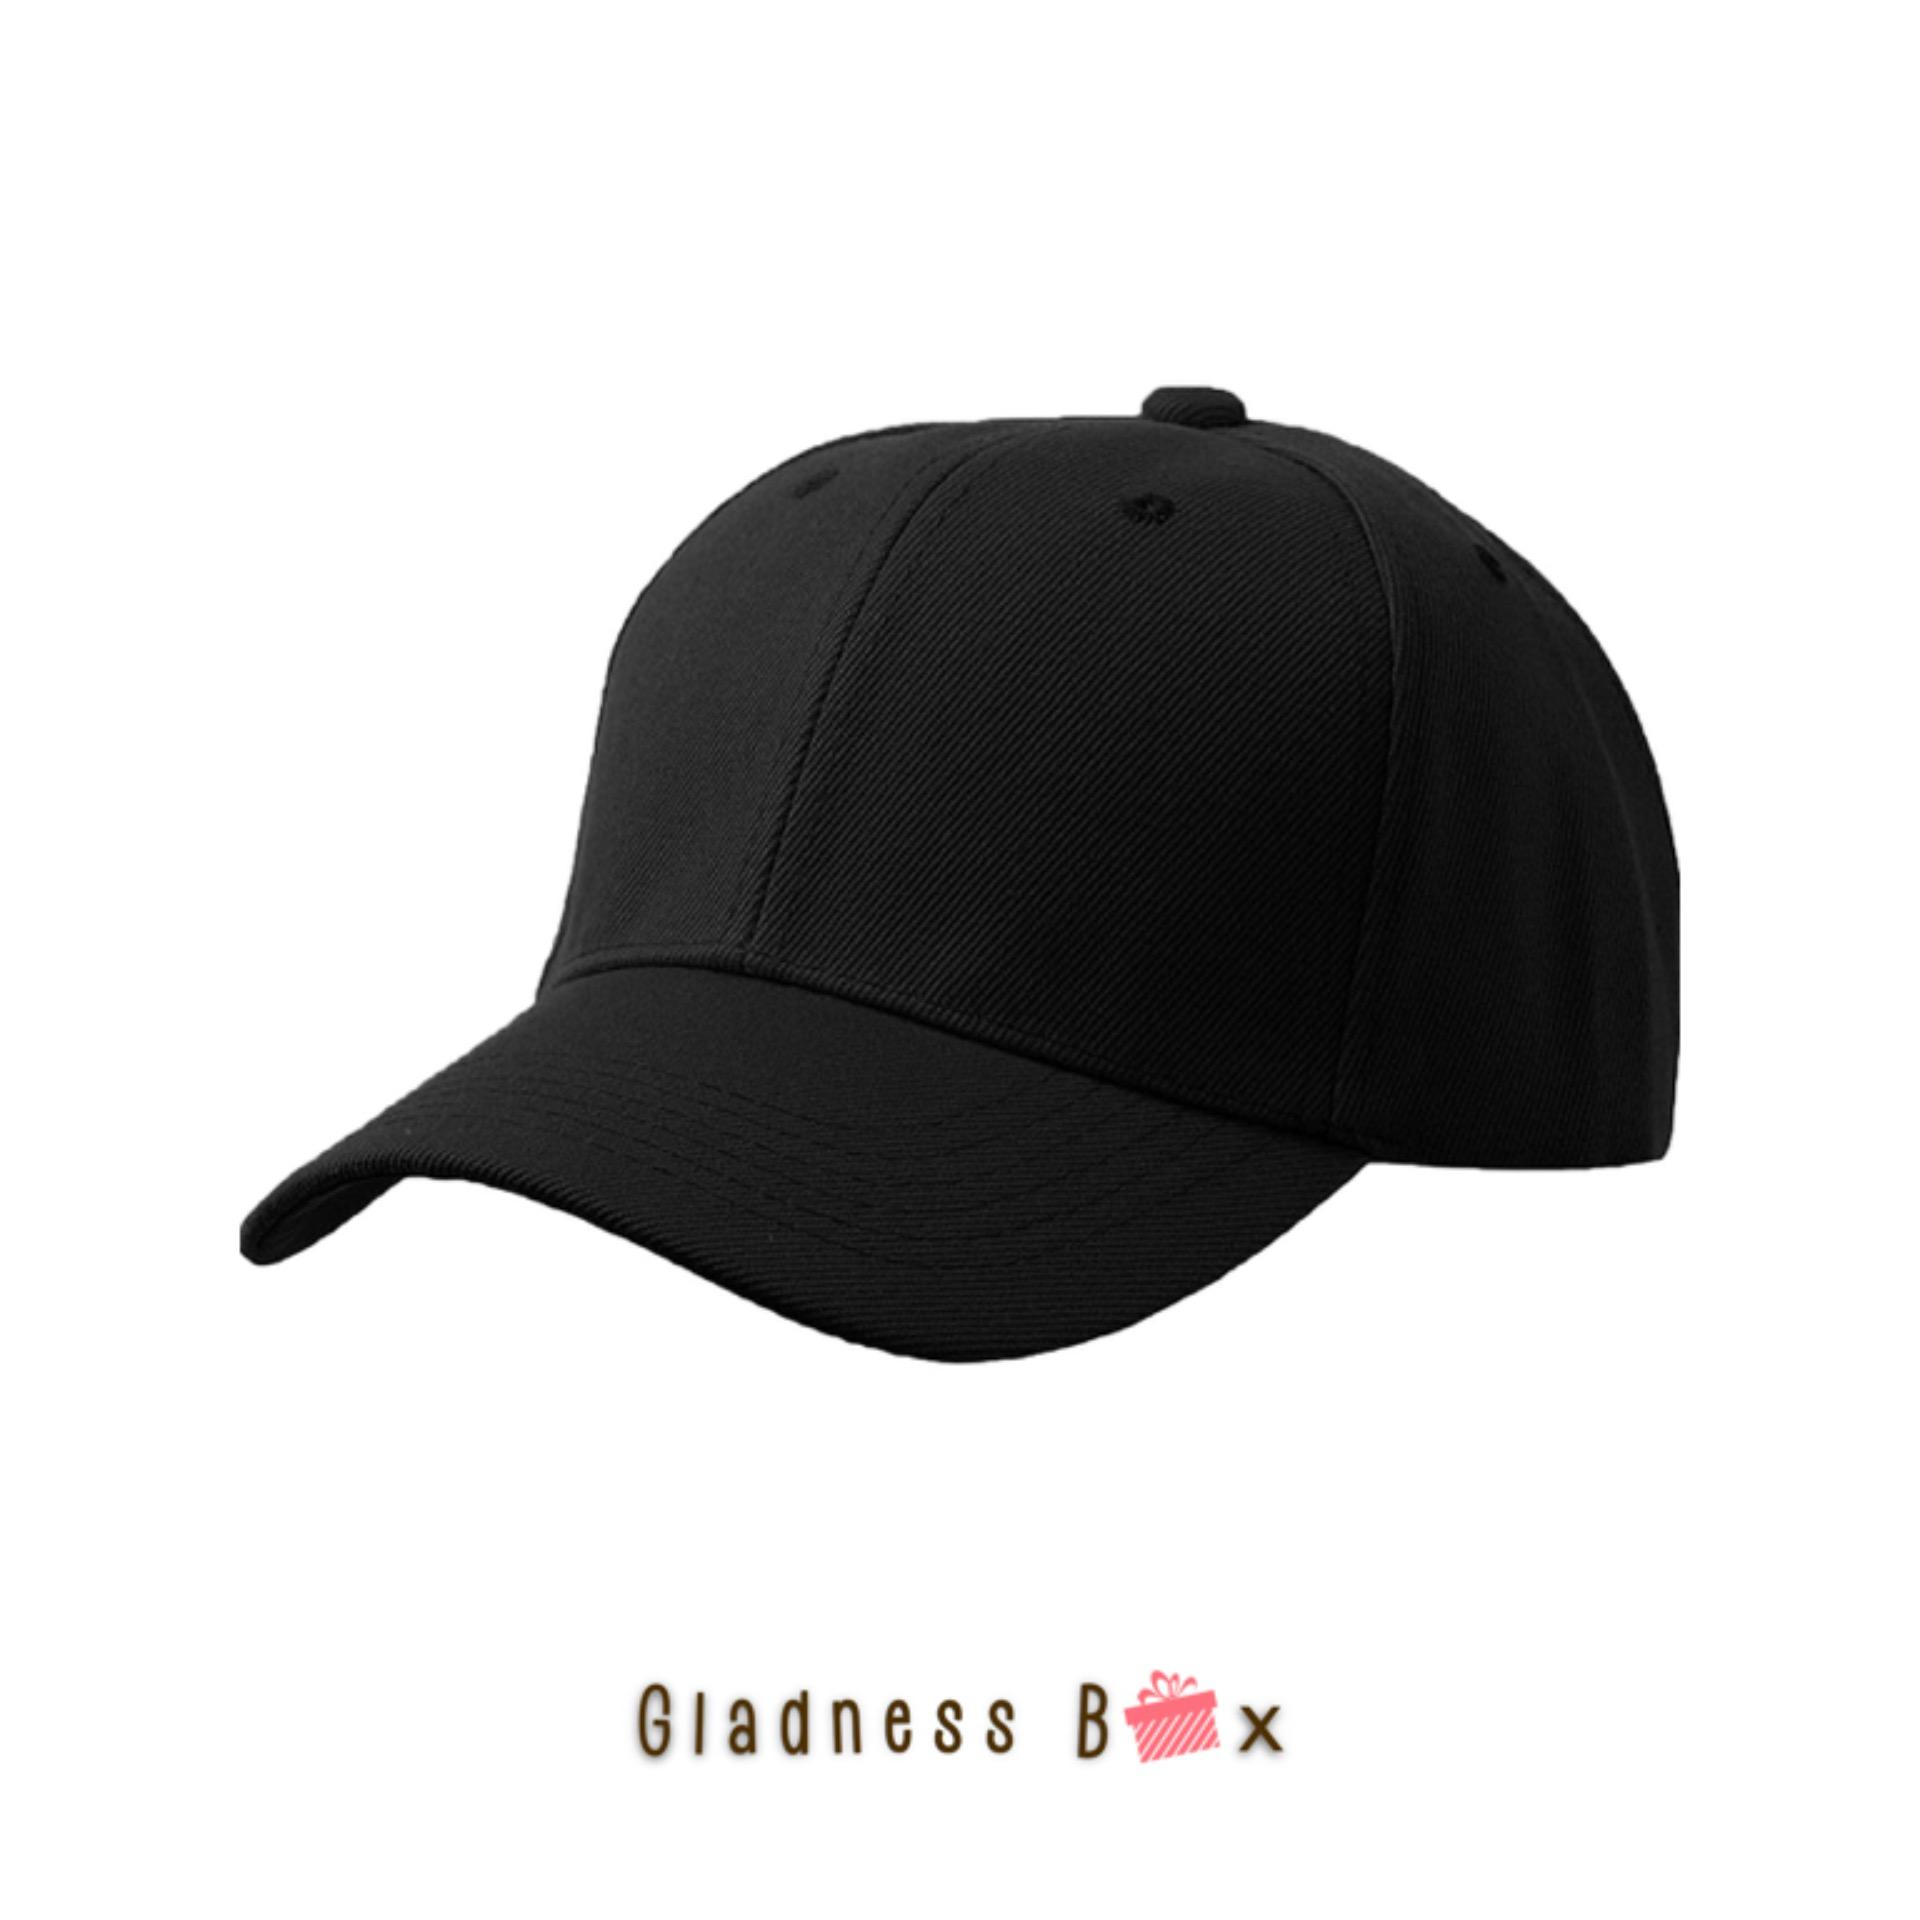 Gladness Box High Quality Plain Baseball Cap for Men Women Unisex e4c9603dc23a